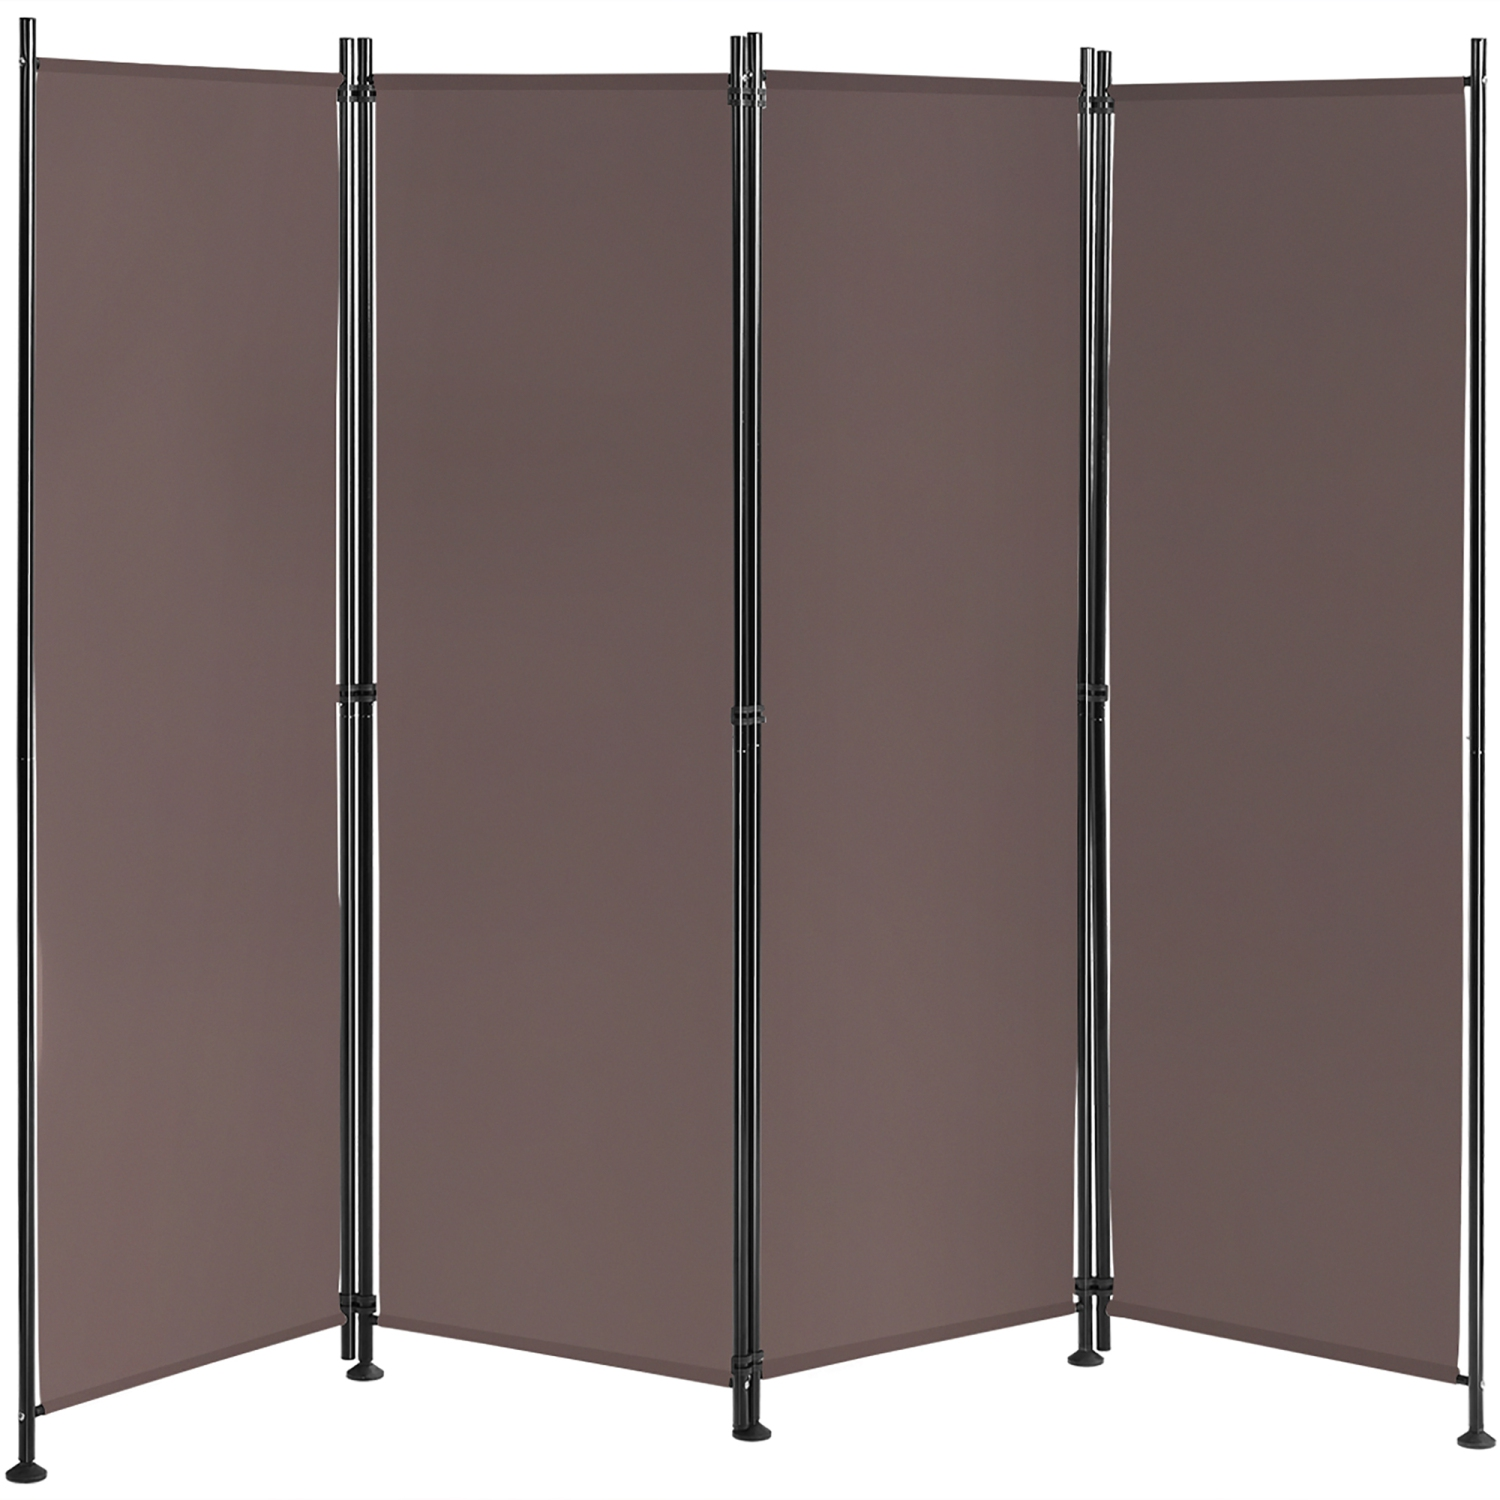 Costway 4 Panel Room Divider Folding Privacy Screen W Steel Frame Decoration Brown Best Buy Canada